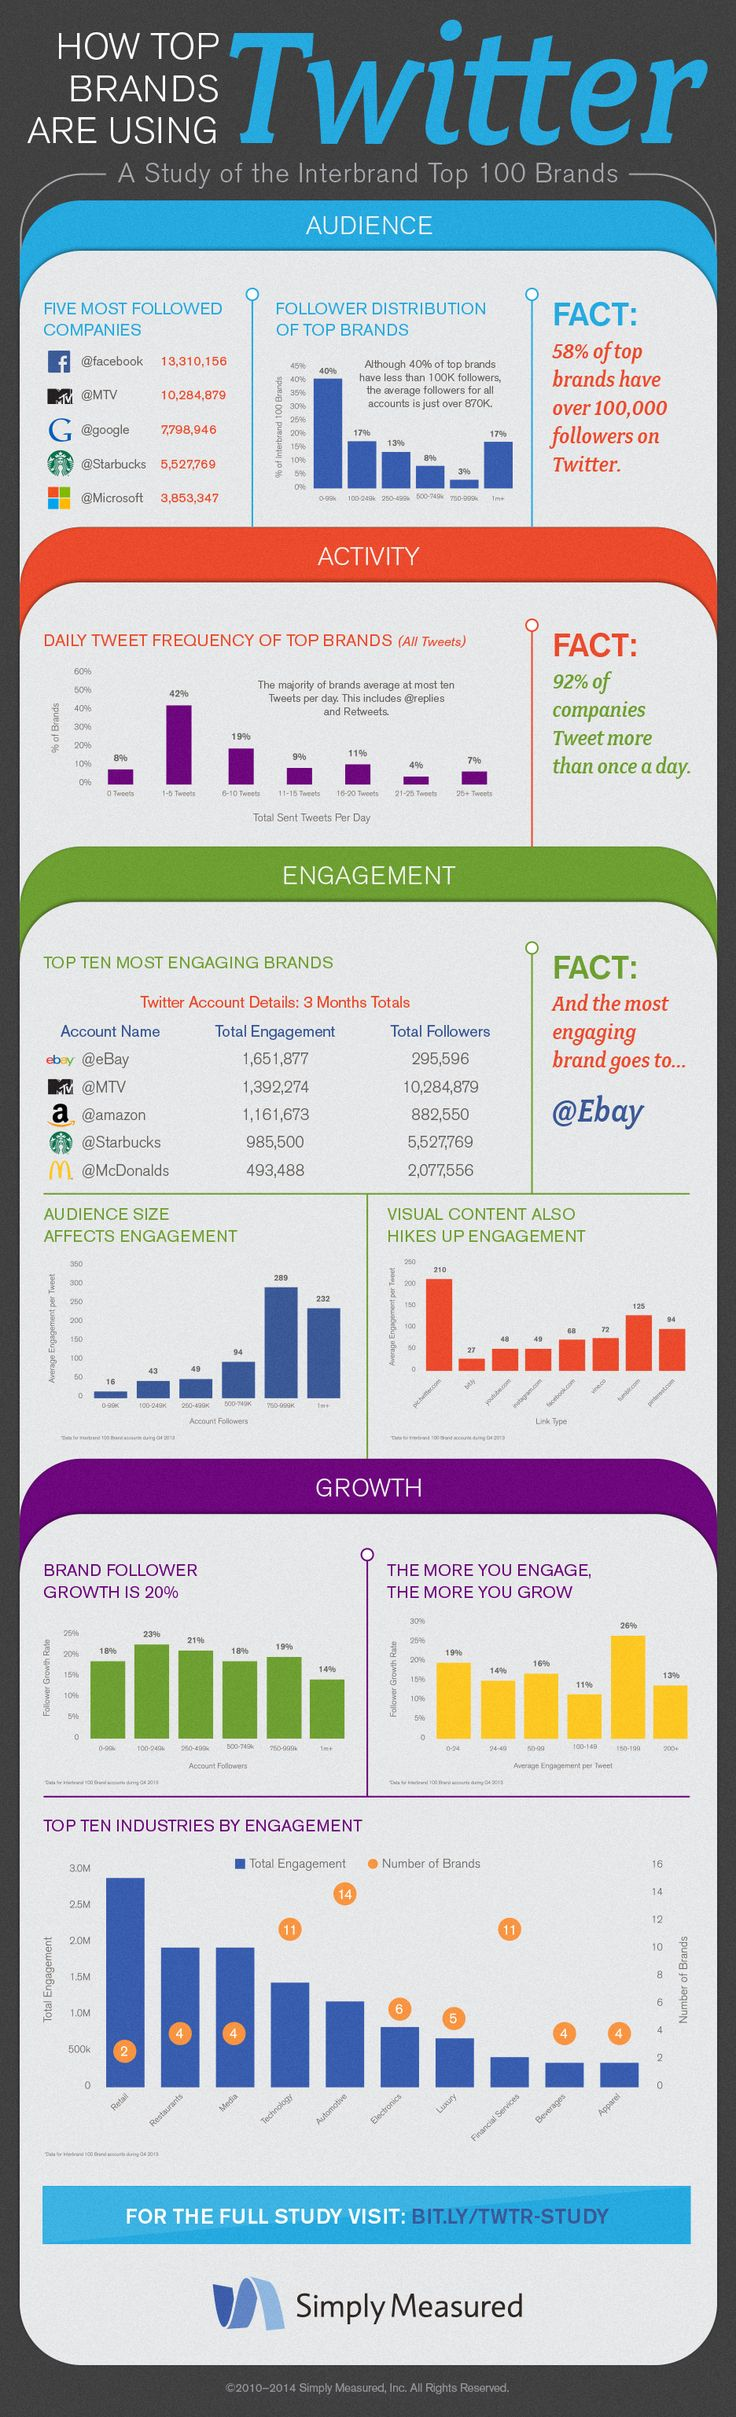 SM_Twitter_Study_Infographic_final